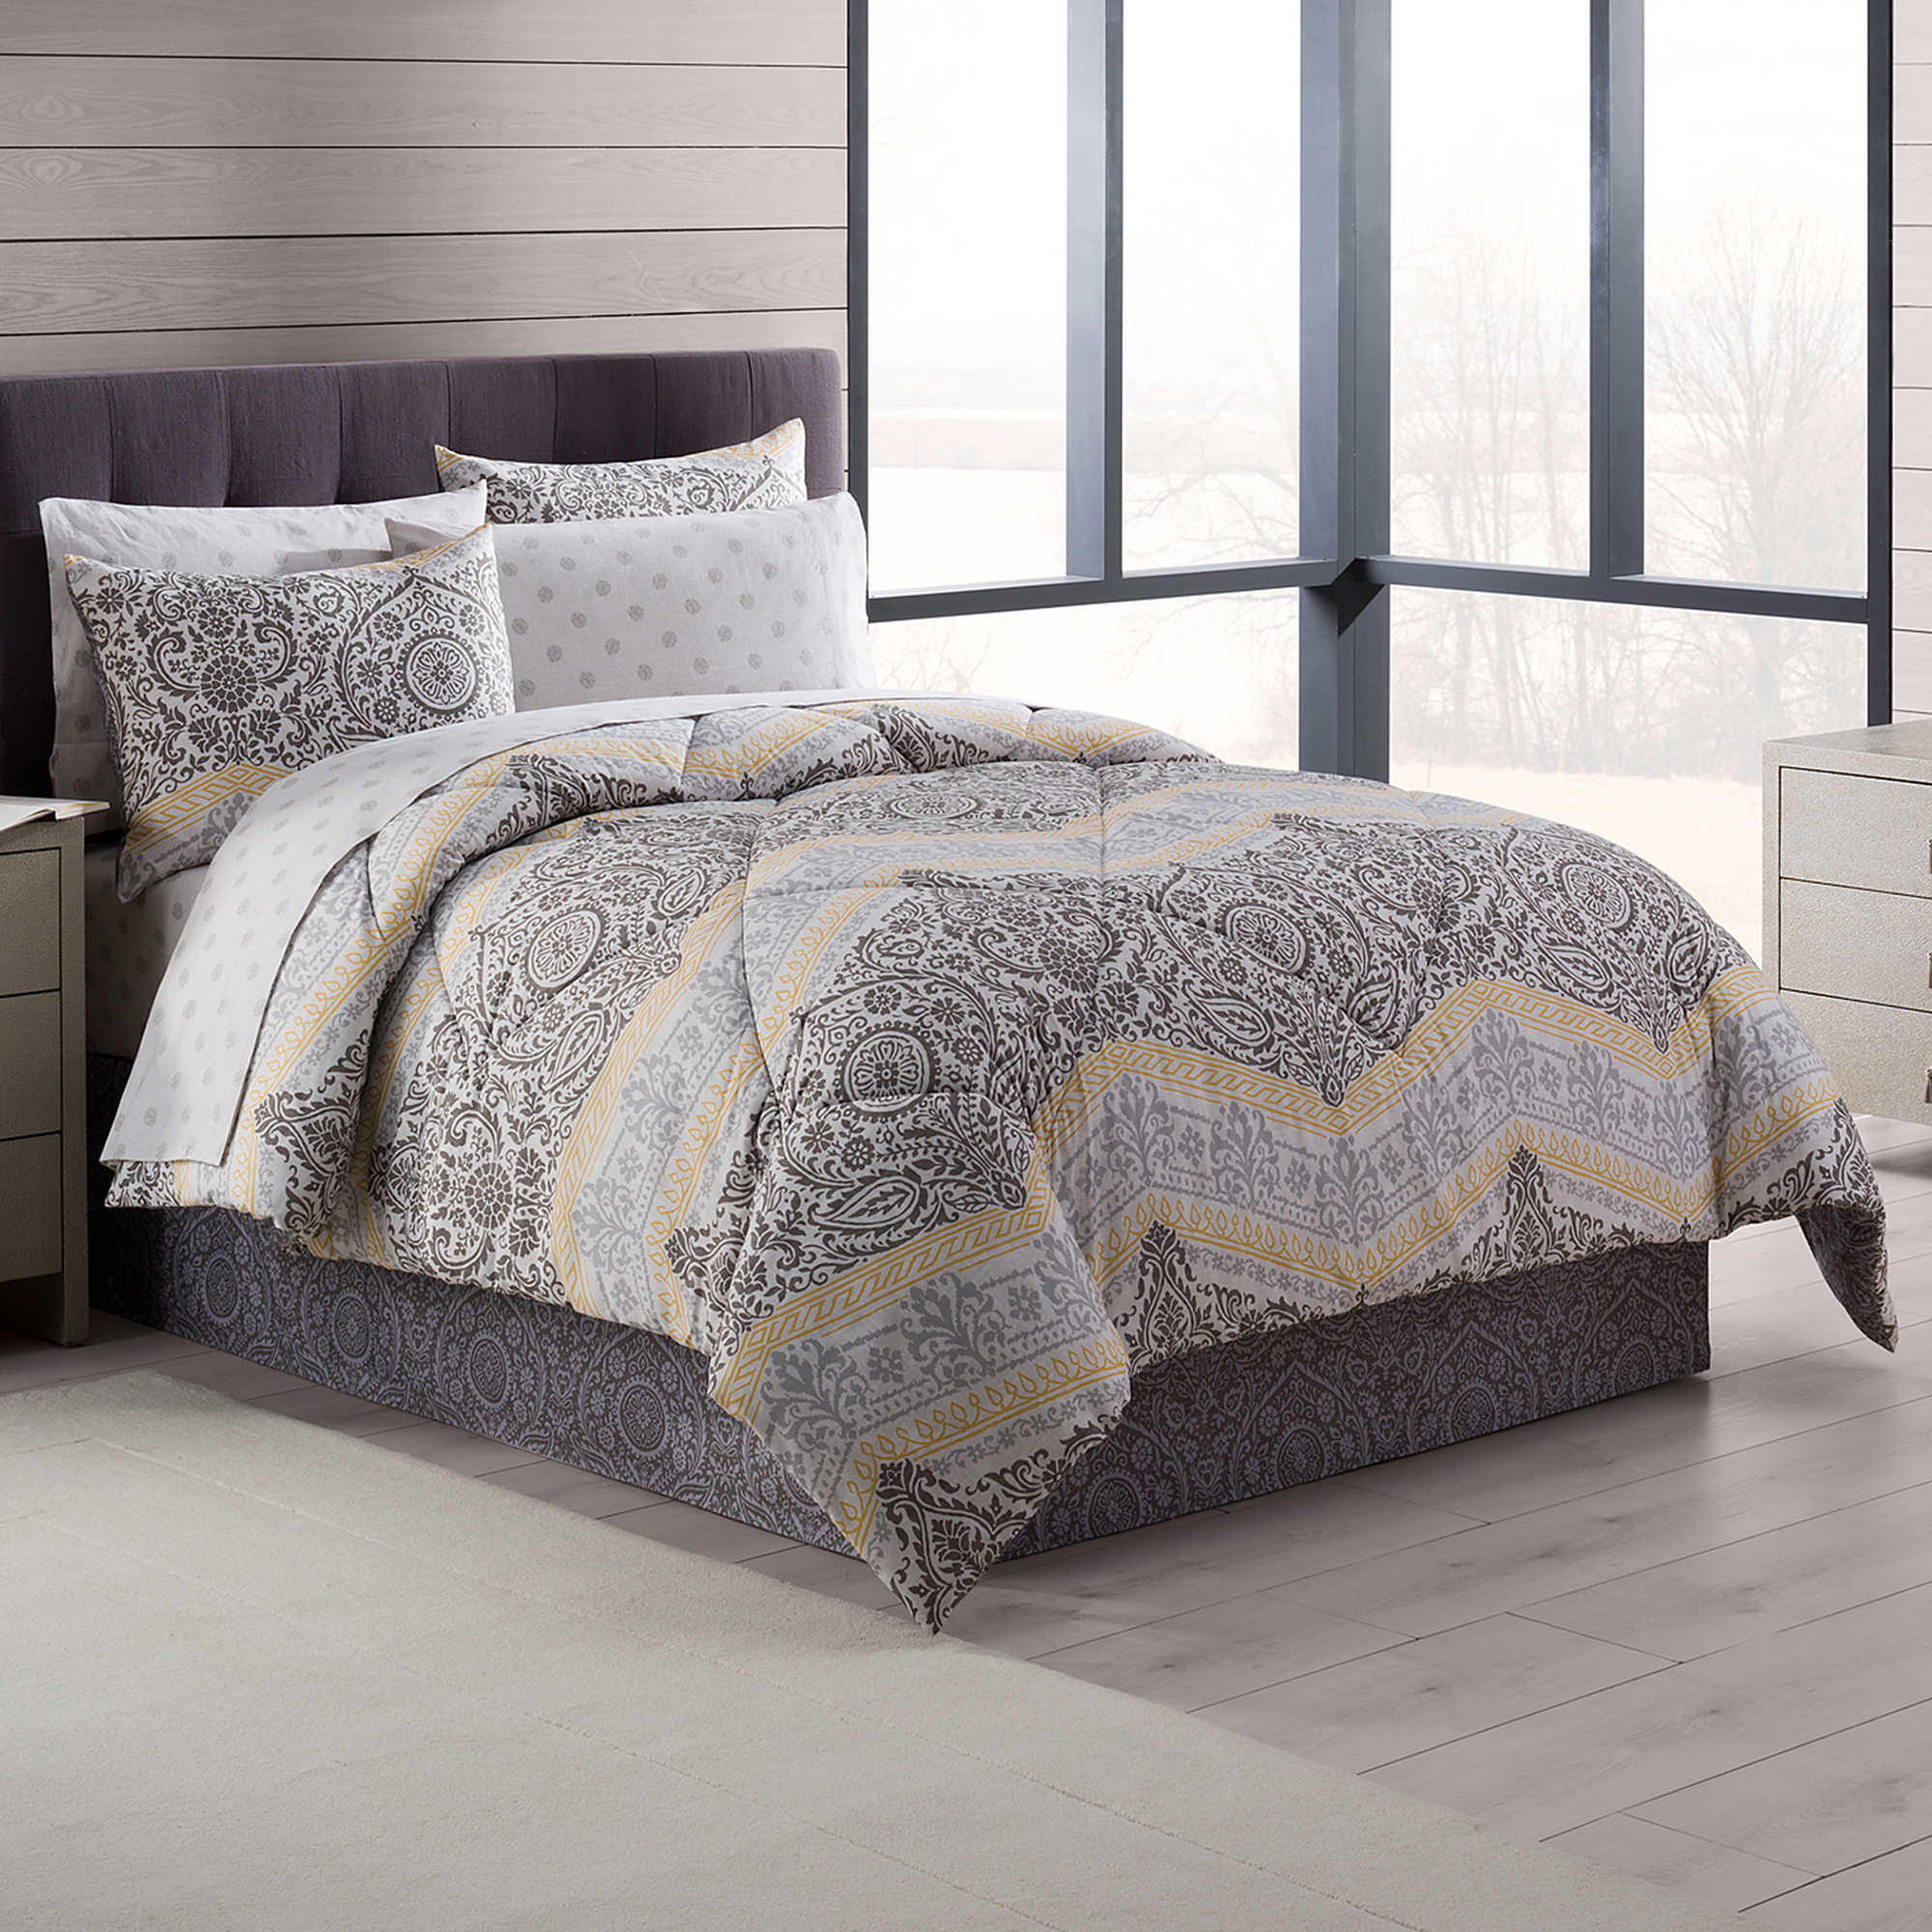 Gray Bedding At Bed Bath And Beyond : Neville comforter set in grey yellow from bed bath beyond